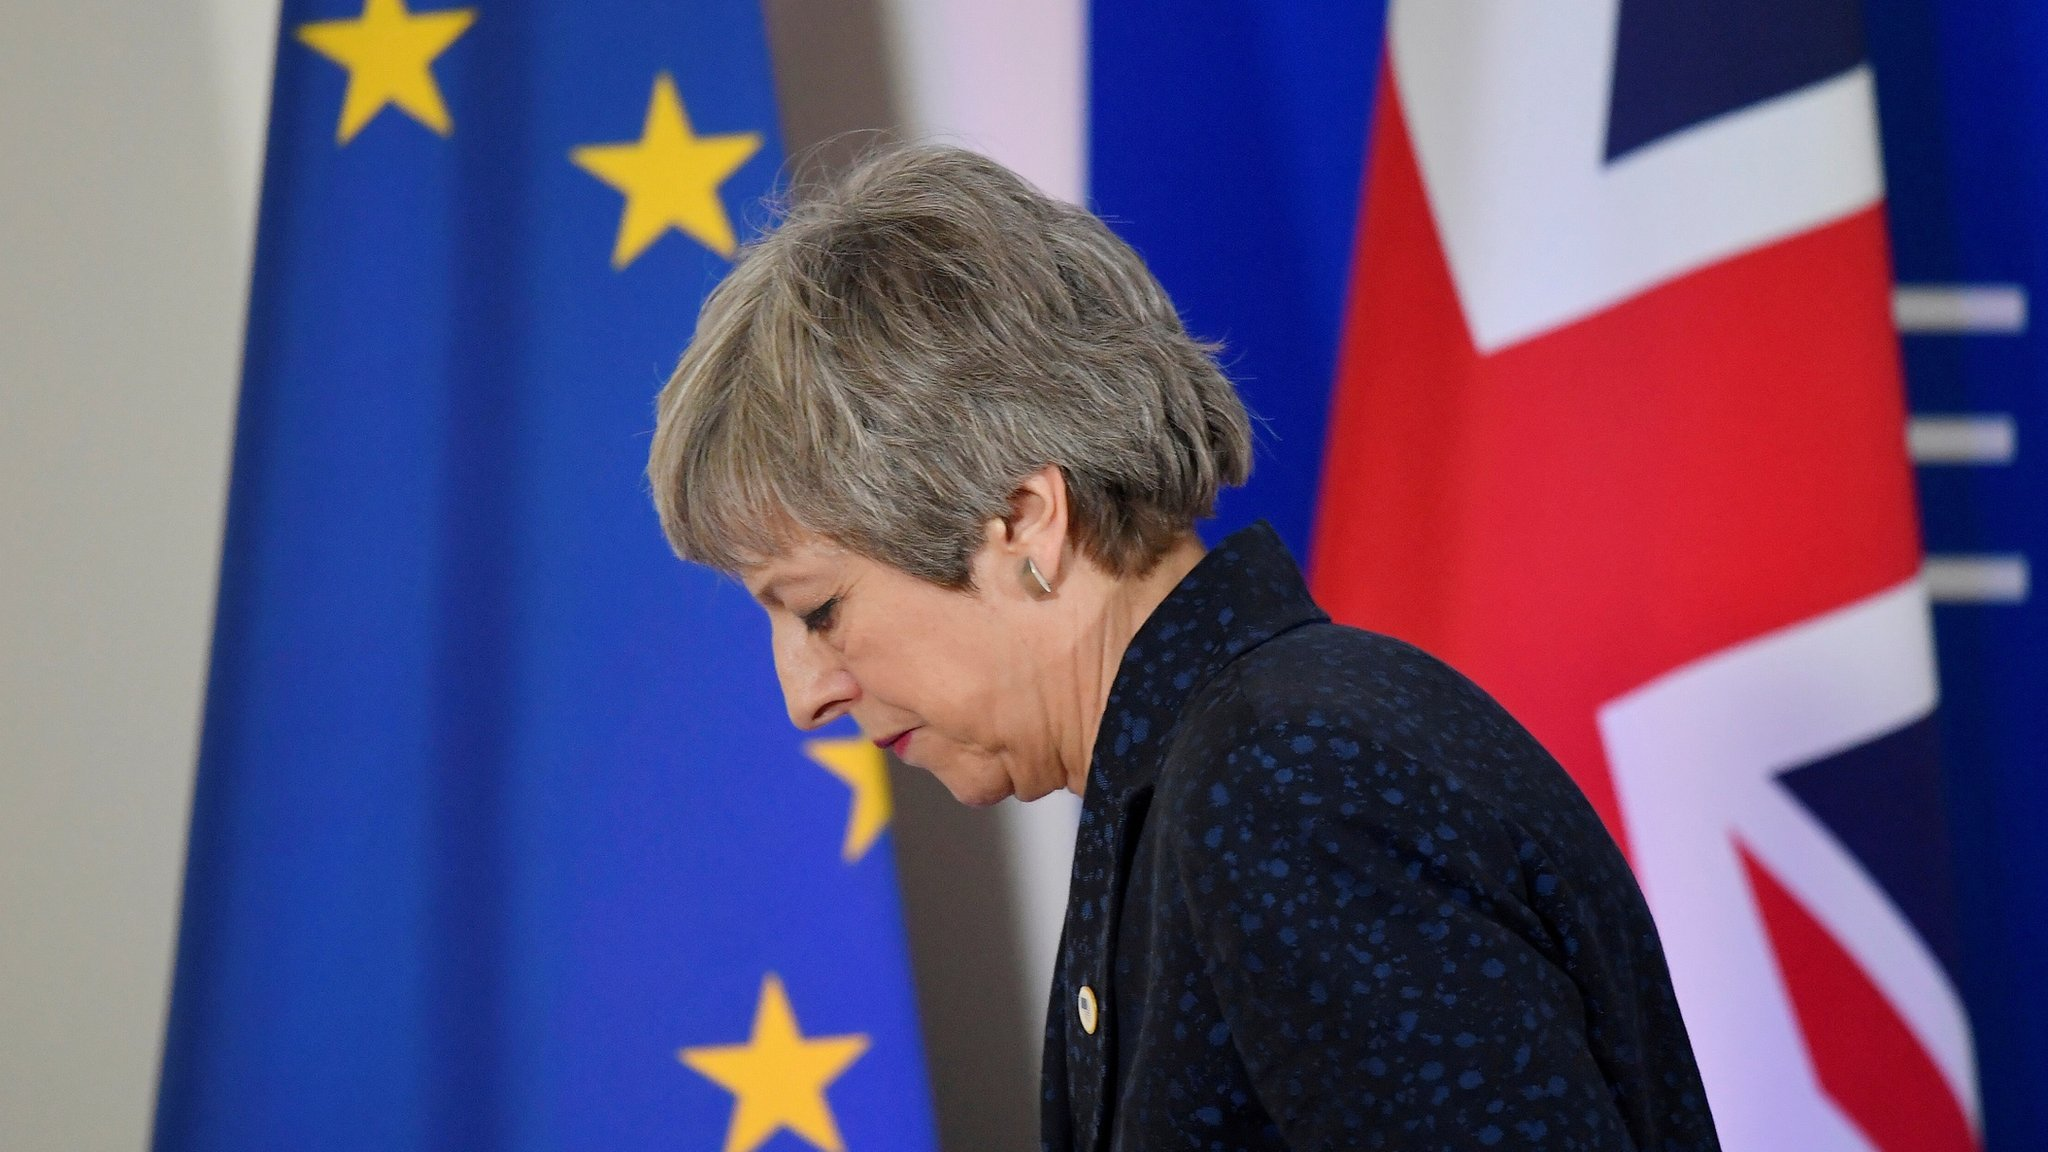 Theresa May resigns: What happened?